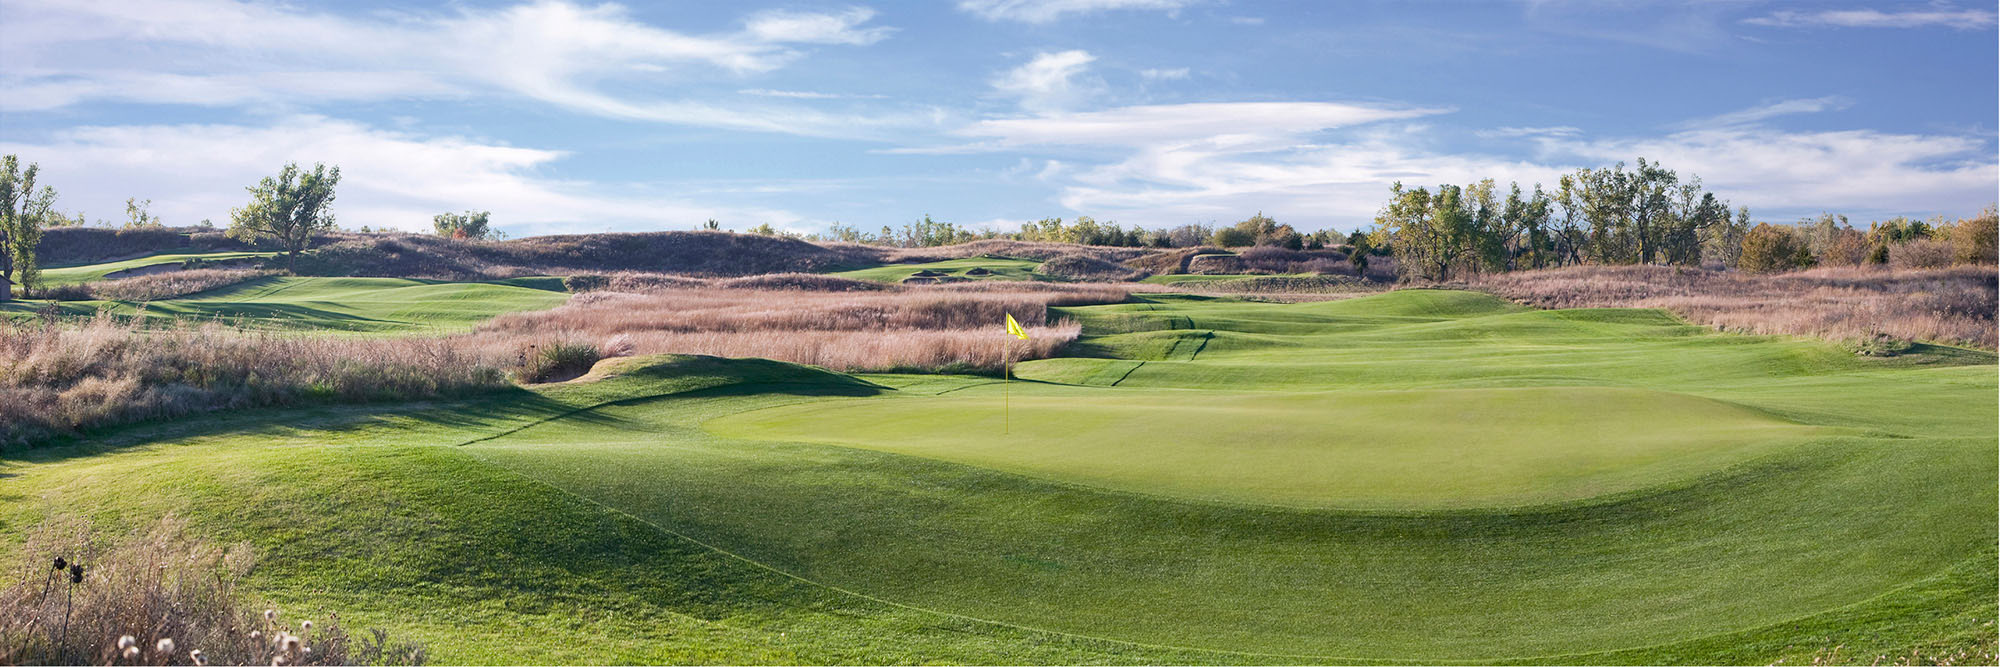 Golf Course Image - Prairie Dunes Country Club No. 9